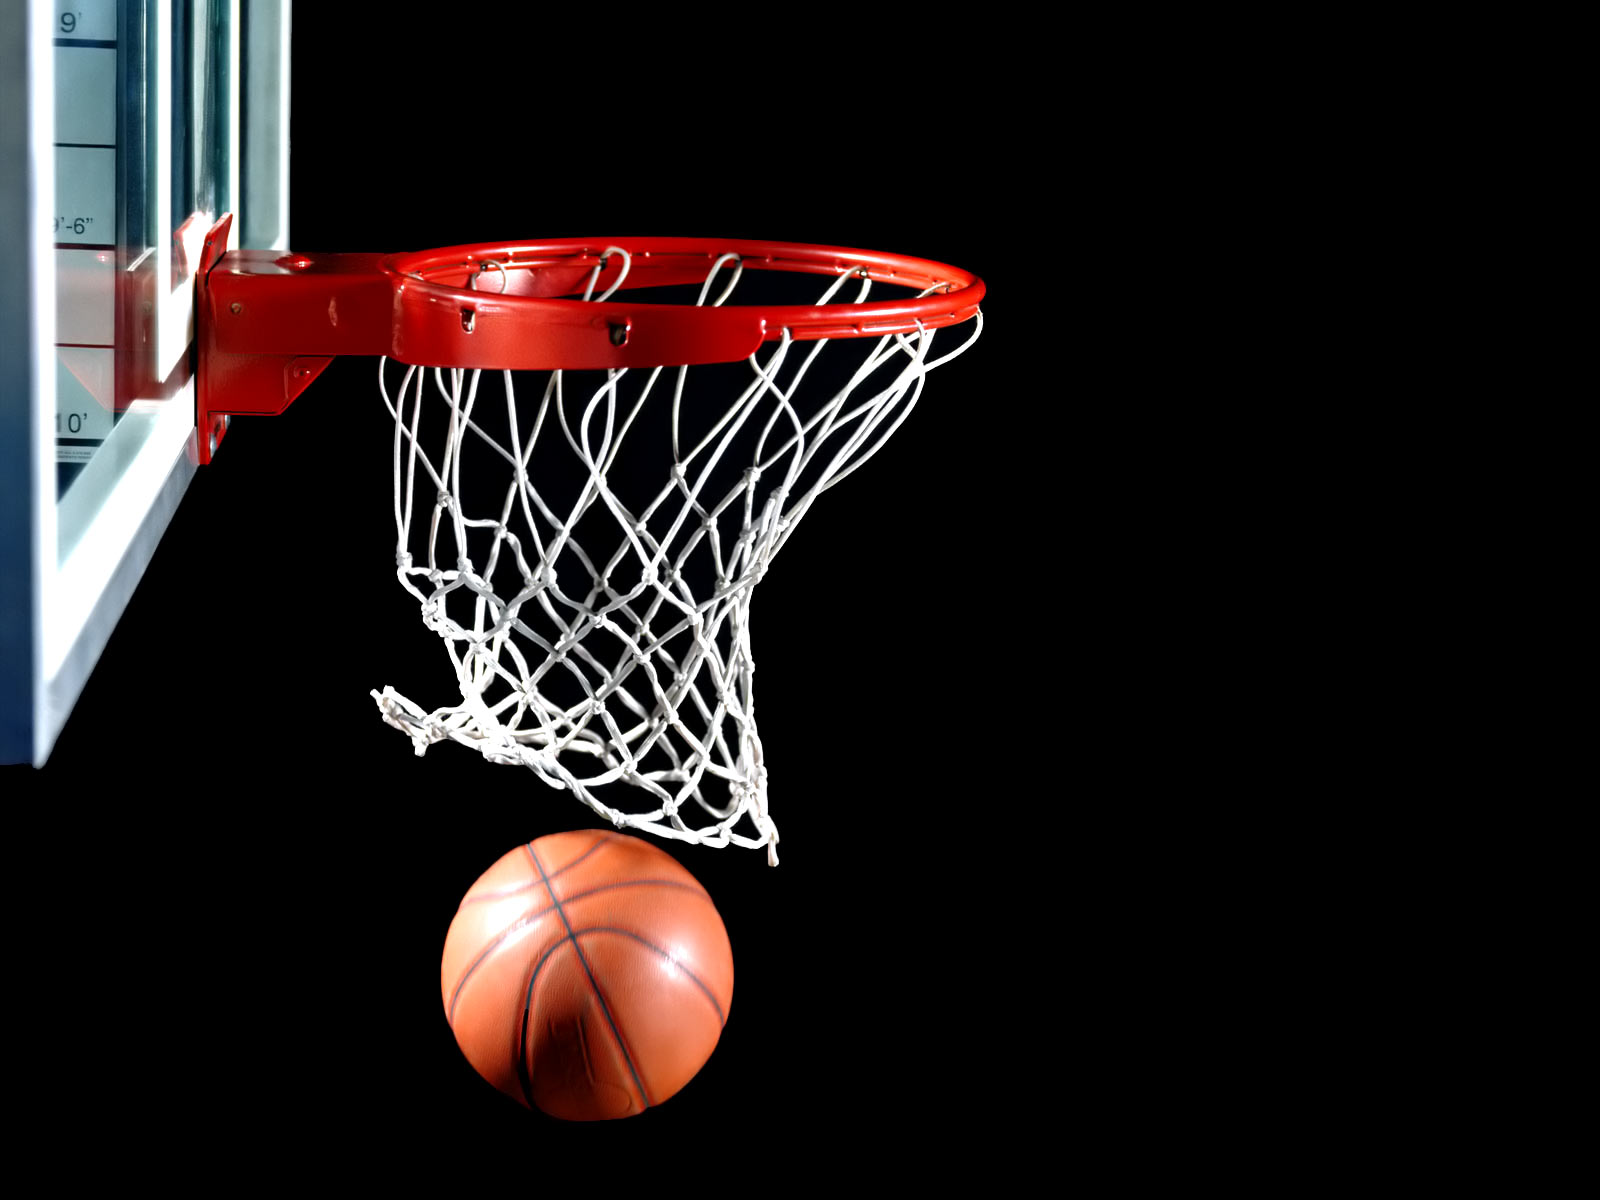 Score: College Hoops 2010points Education 0 | LearnLong Blog